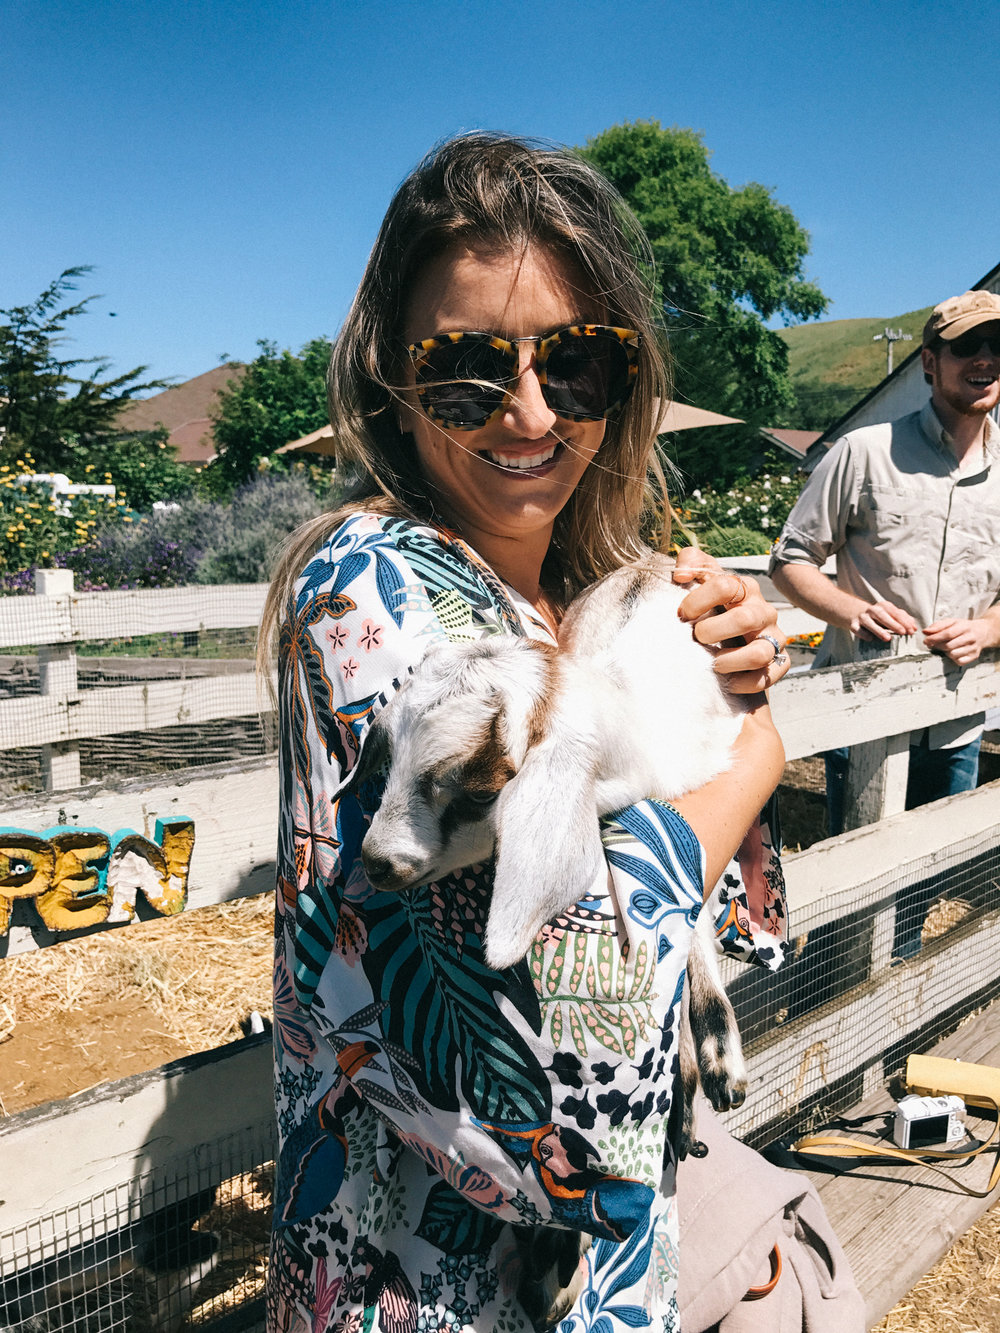 goat farm visit in half moon bay | A Fabulous Fete